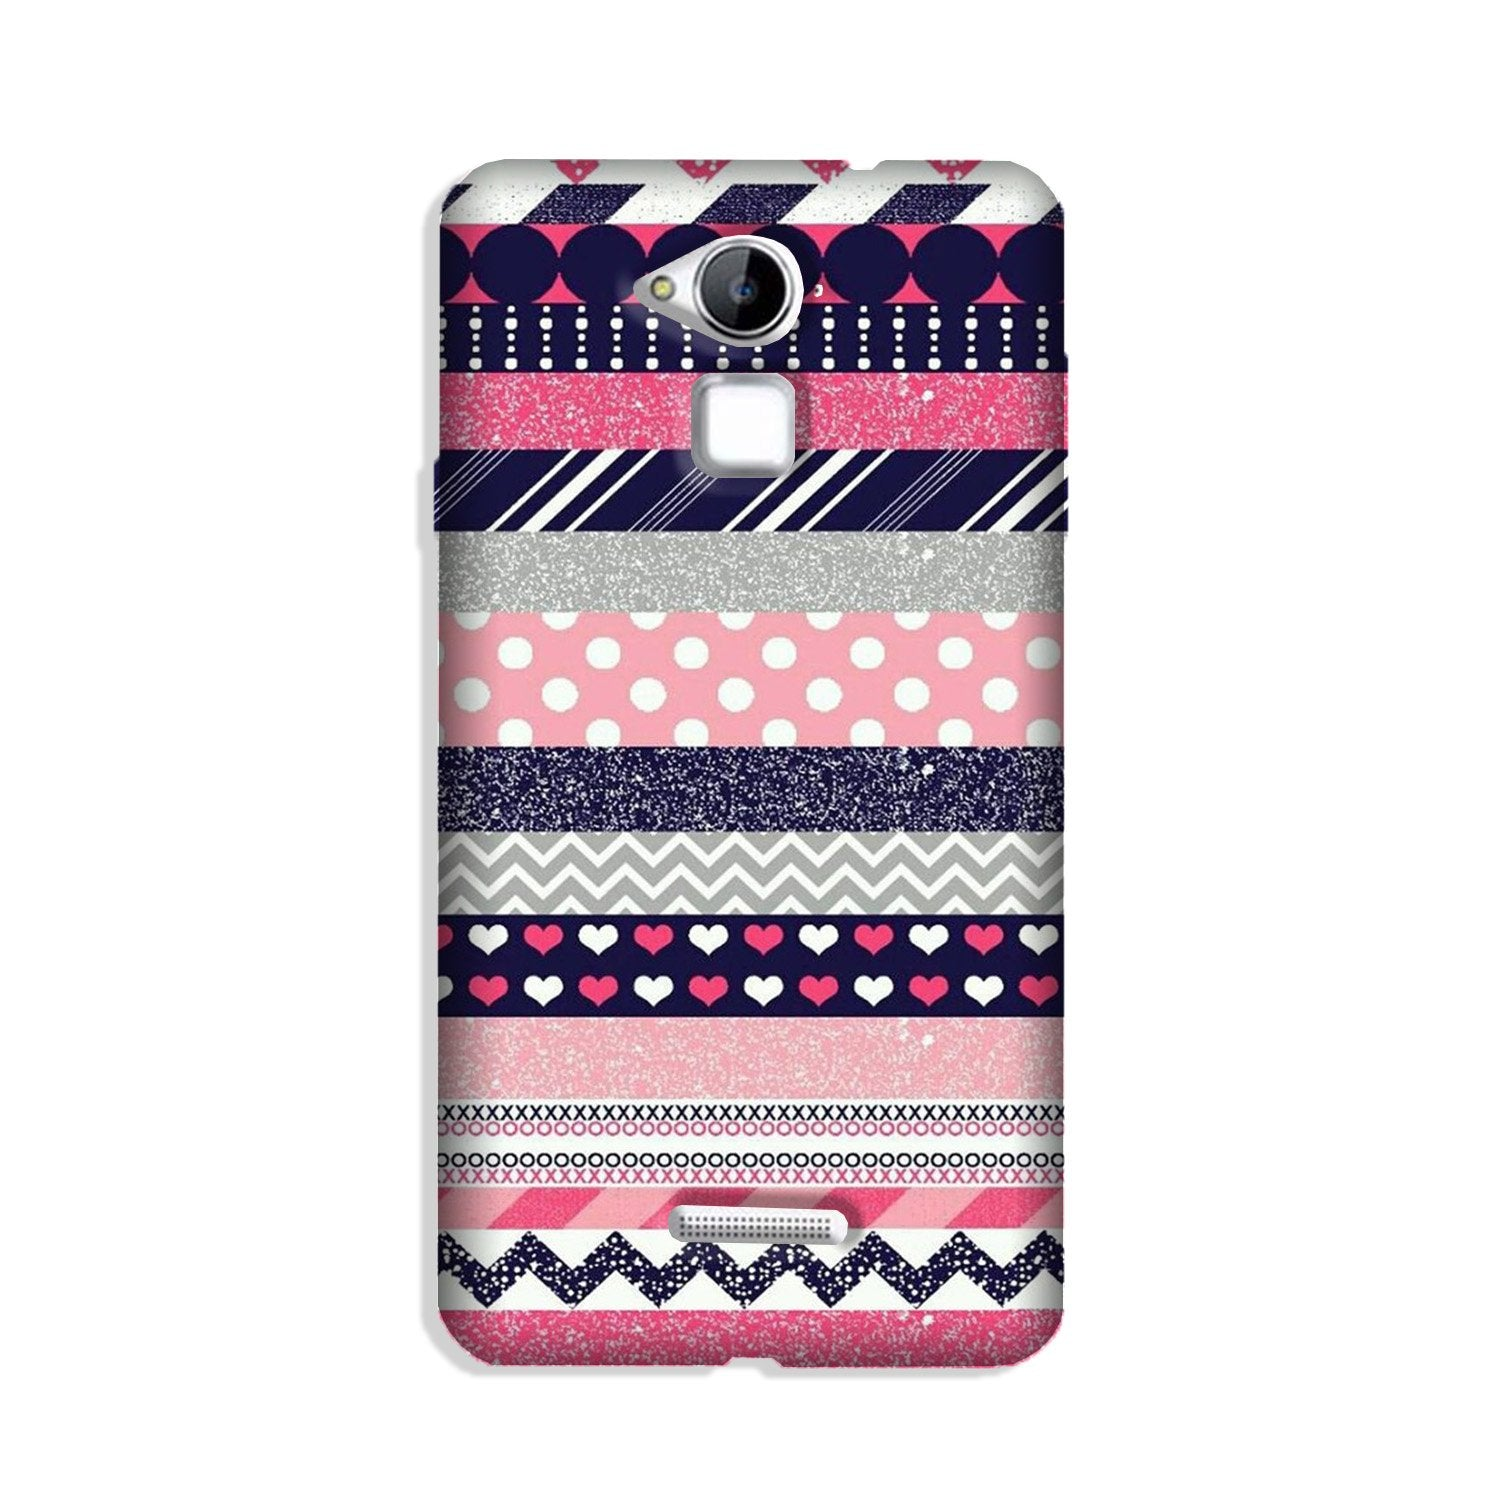 Pattern Case for Coolpad Note 3